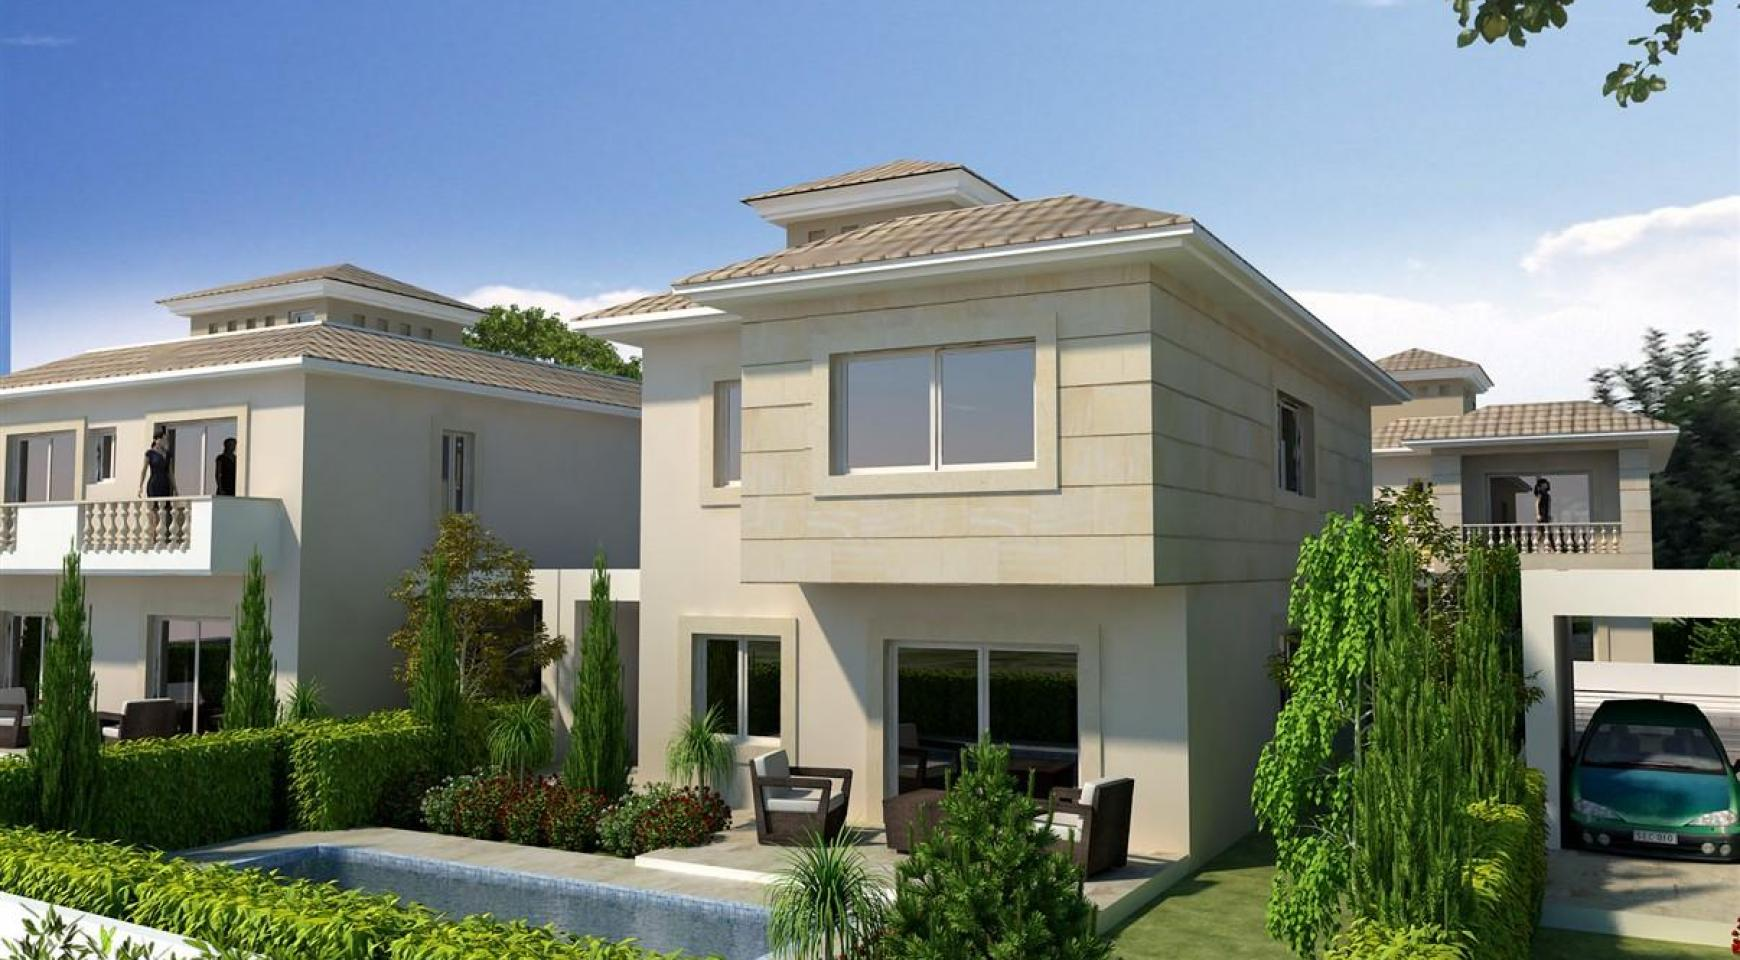 3 Bedroom Villa within a New Project - 10